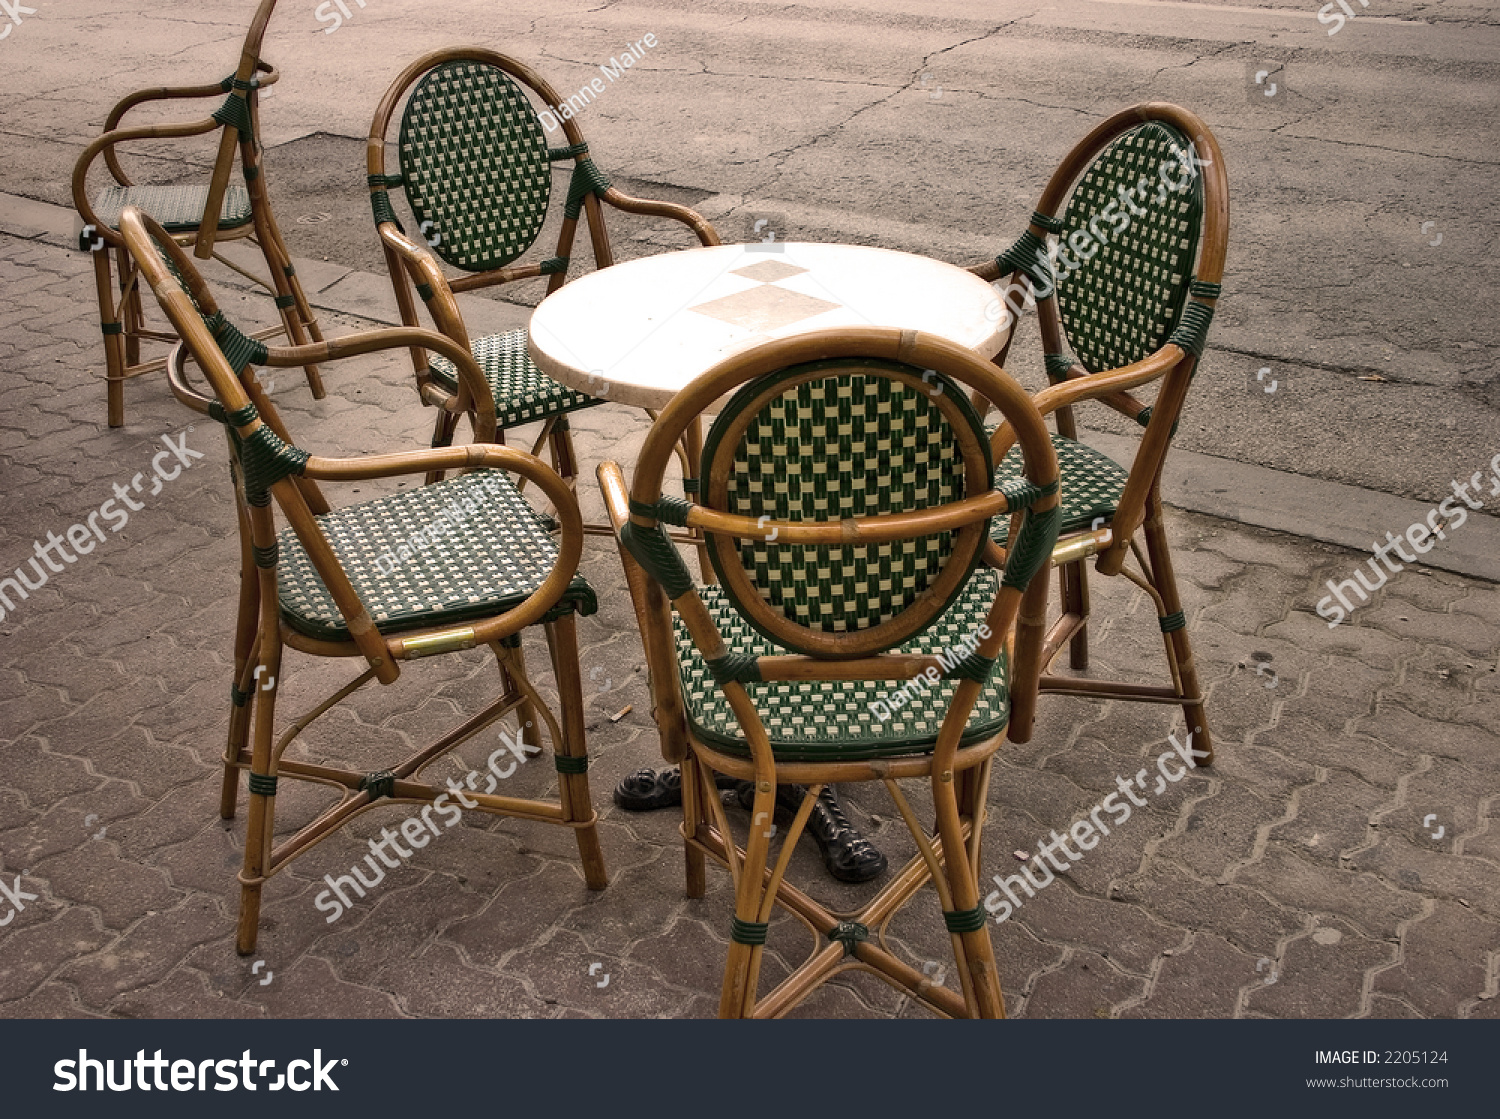 Cane Chairs Around A Small Round Table On An Empty Street.